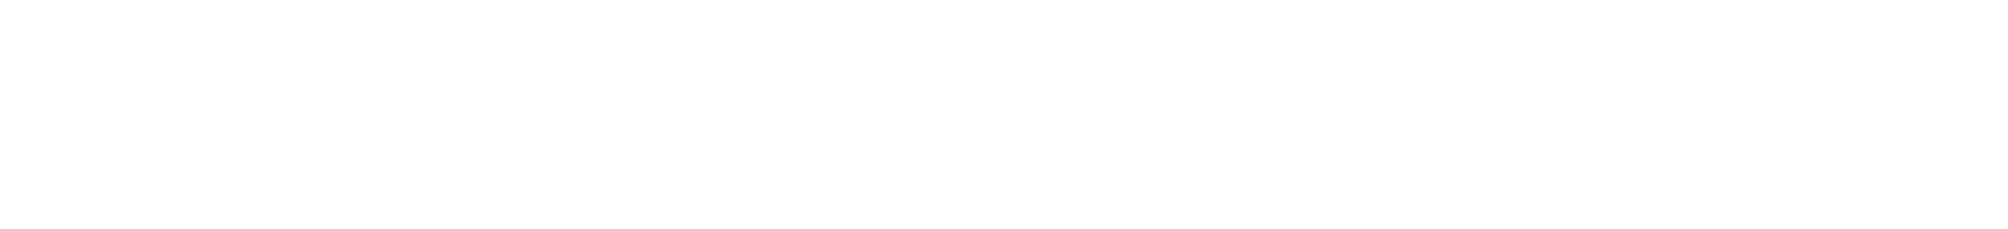 Architectural Wall Systems, Inc.